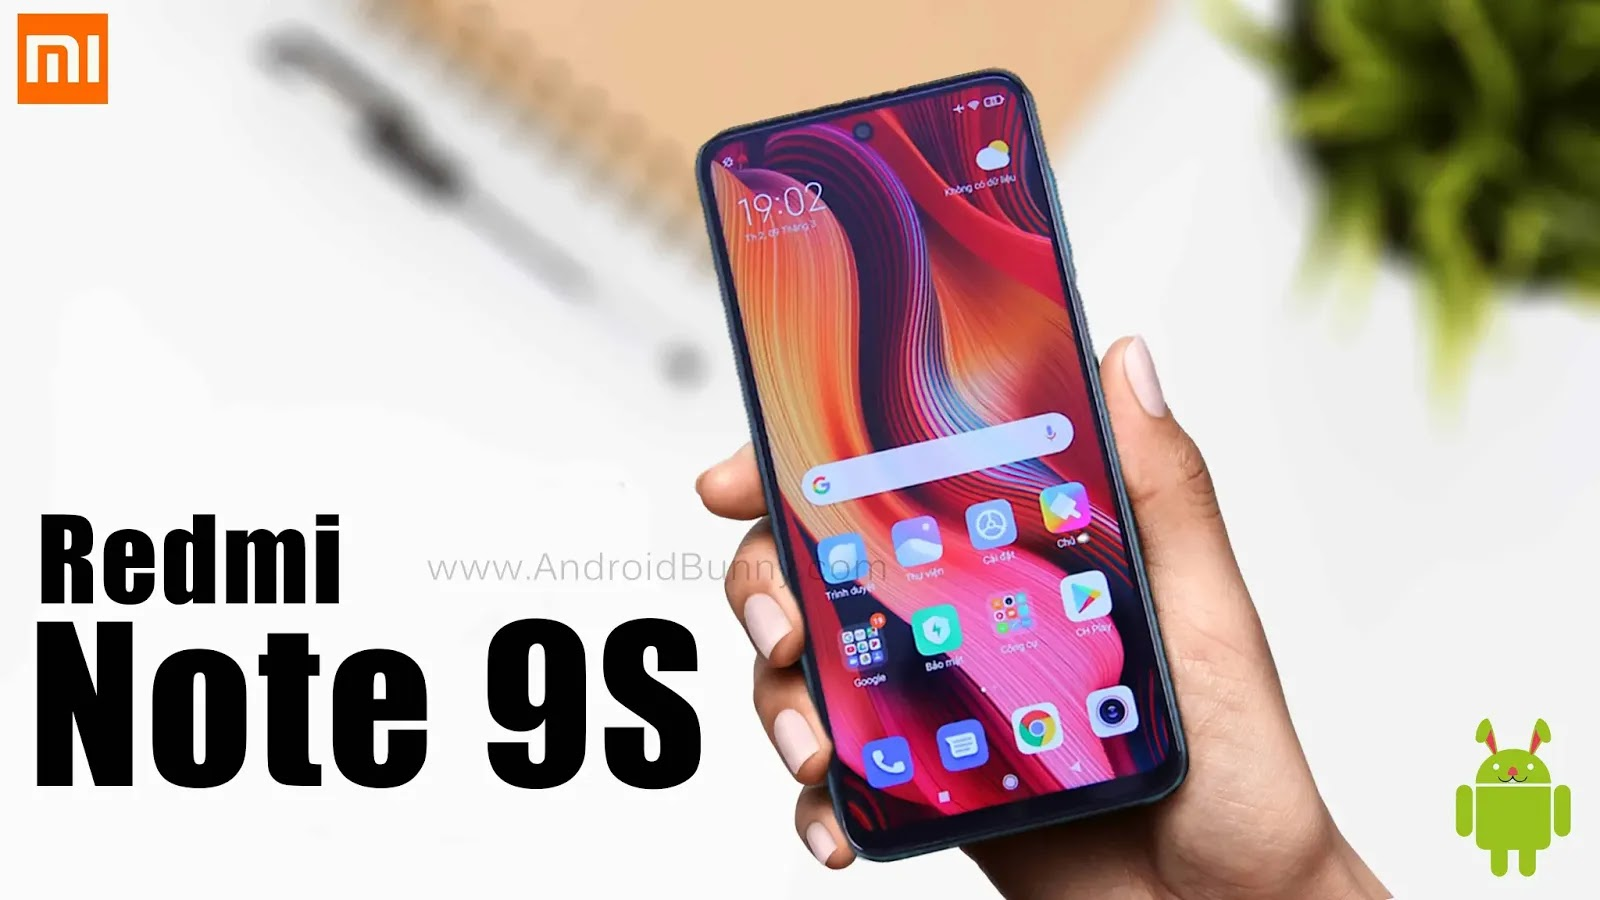 Xiaomi Redmi Note 9s Specifications Price Release Date Android Bunny 100 Genuine Info